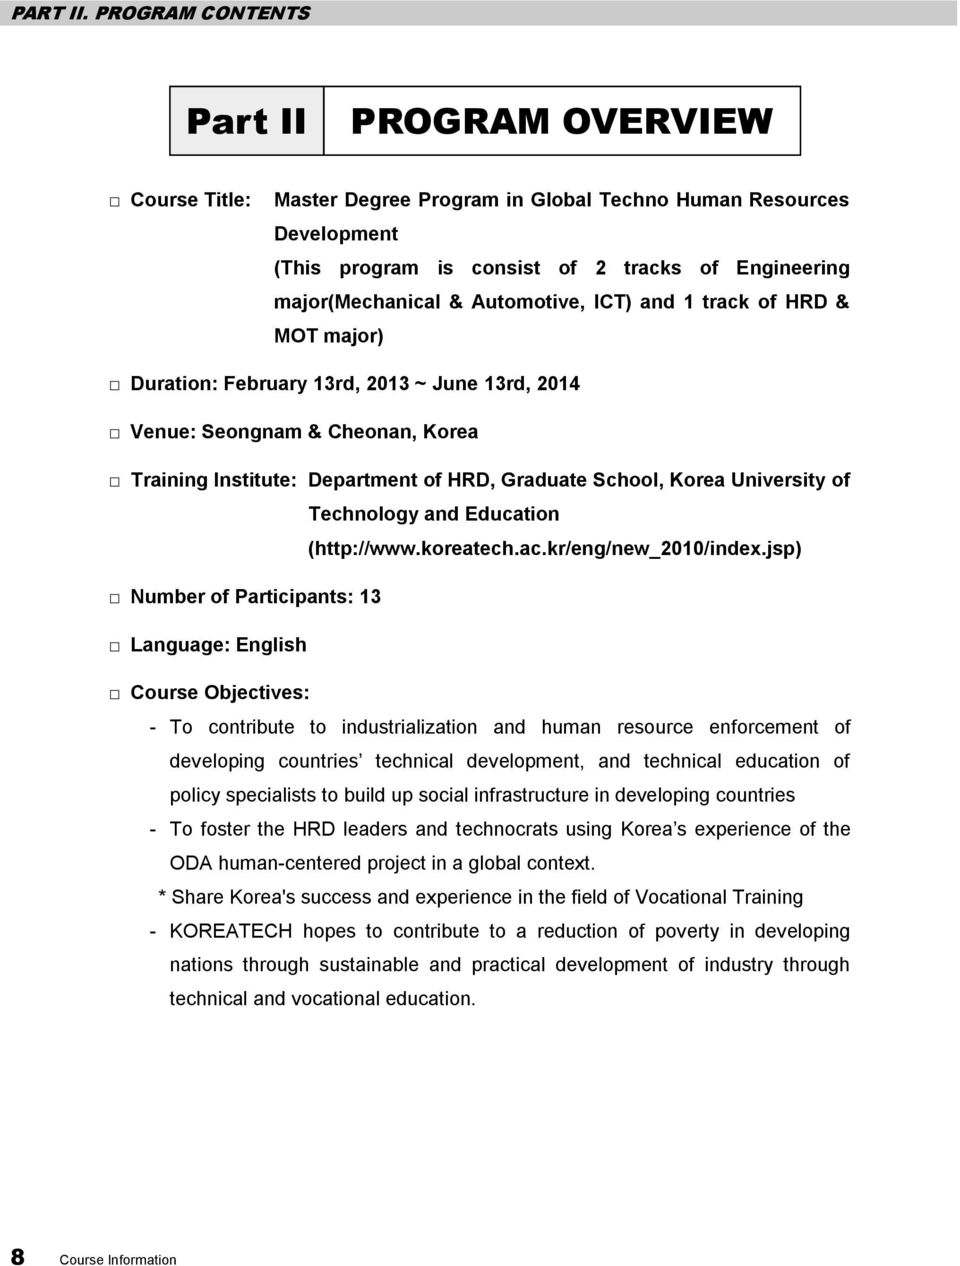 Automotive, ICT) and 1 track of HRD & MOT major) Duration: February 13rd, 2013 ~ June 13rd, 2014 Venue: Seongnam & Cheonan, Korea Training Institute: Department of HRD, Graduate School, Korea